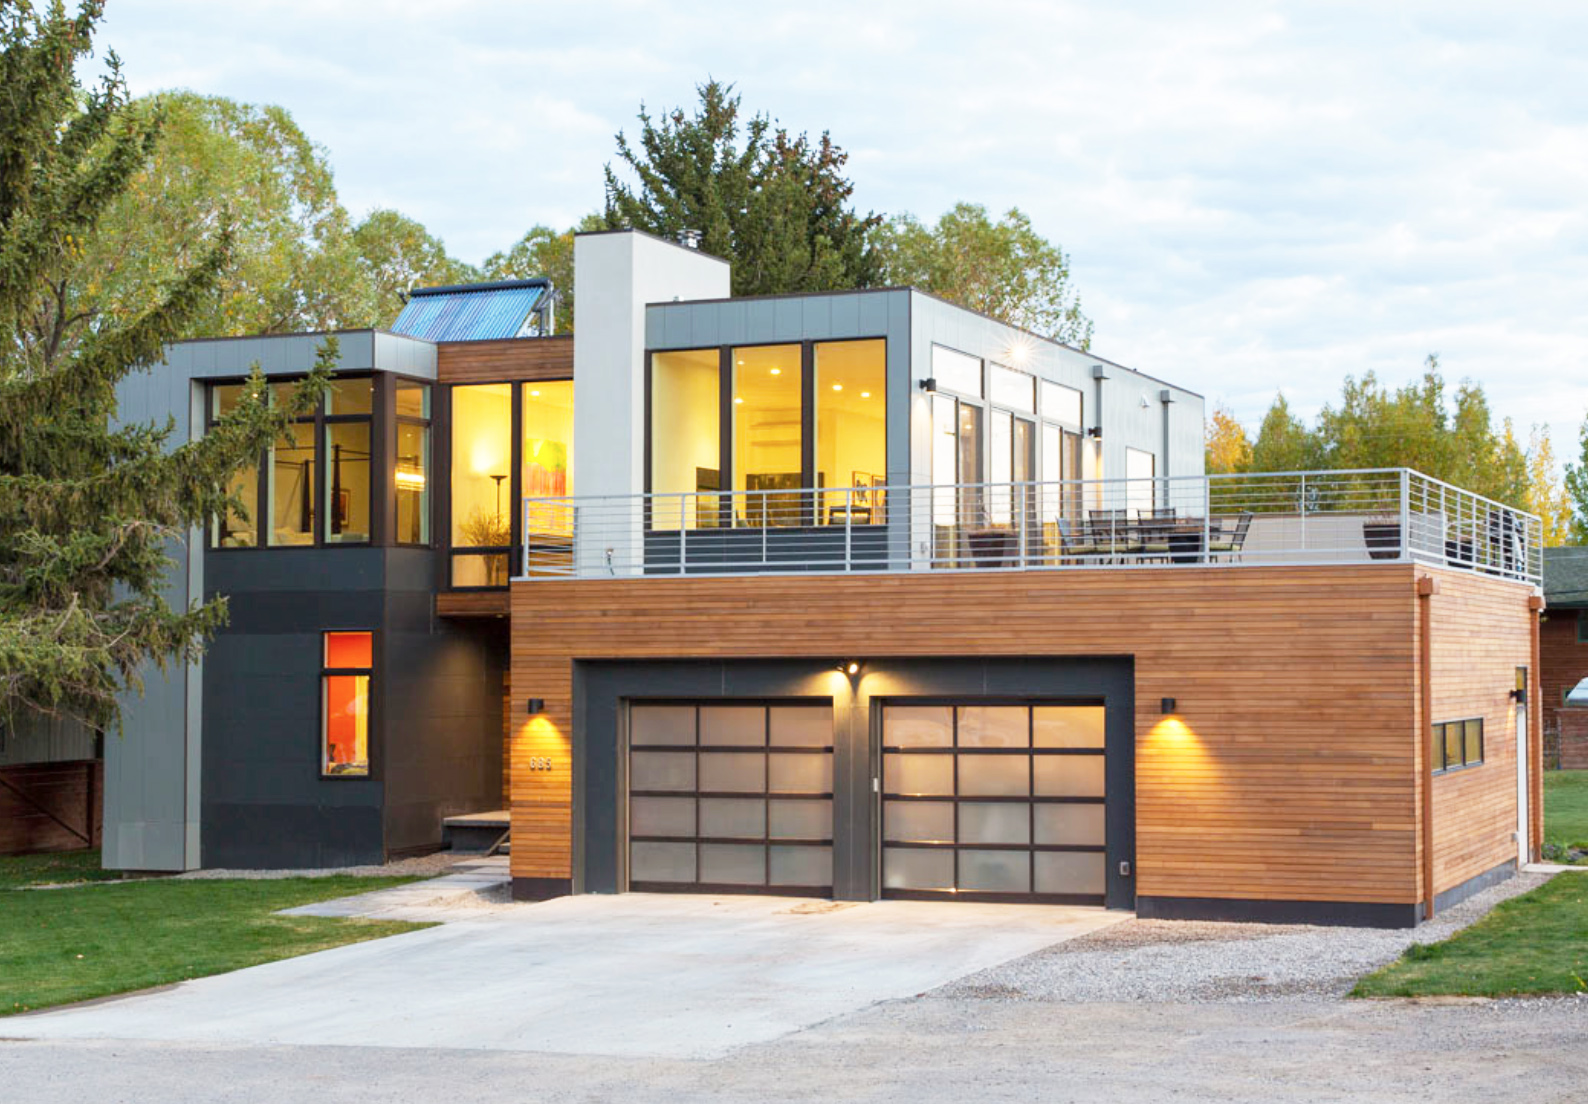 Modern Open Plan Home In Jackson Hole Reduces Construction Waste With Six  Prefab Units